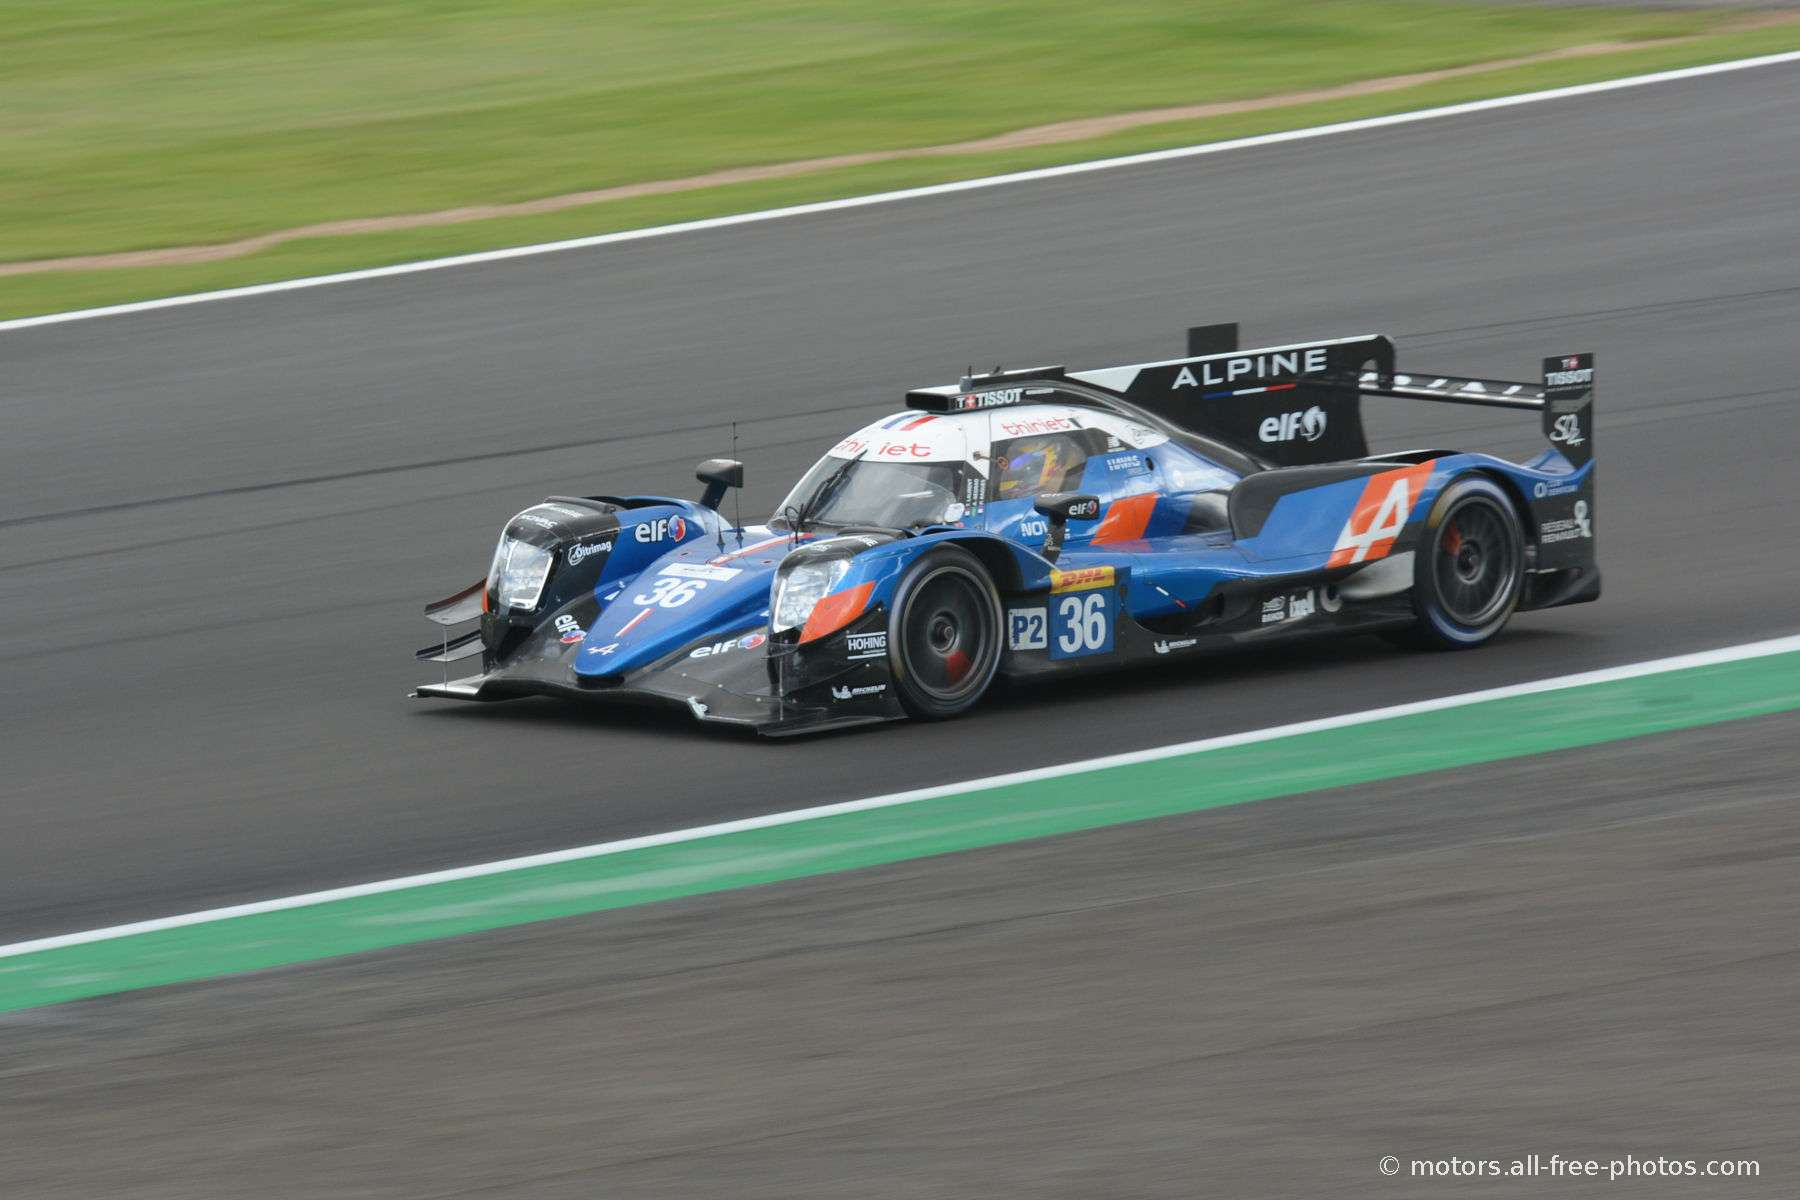 Alpine A470-Gibson - Team Signatech Alpine Elf